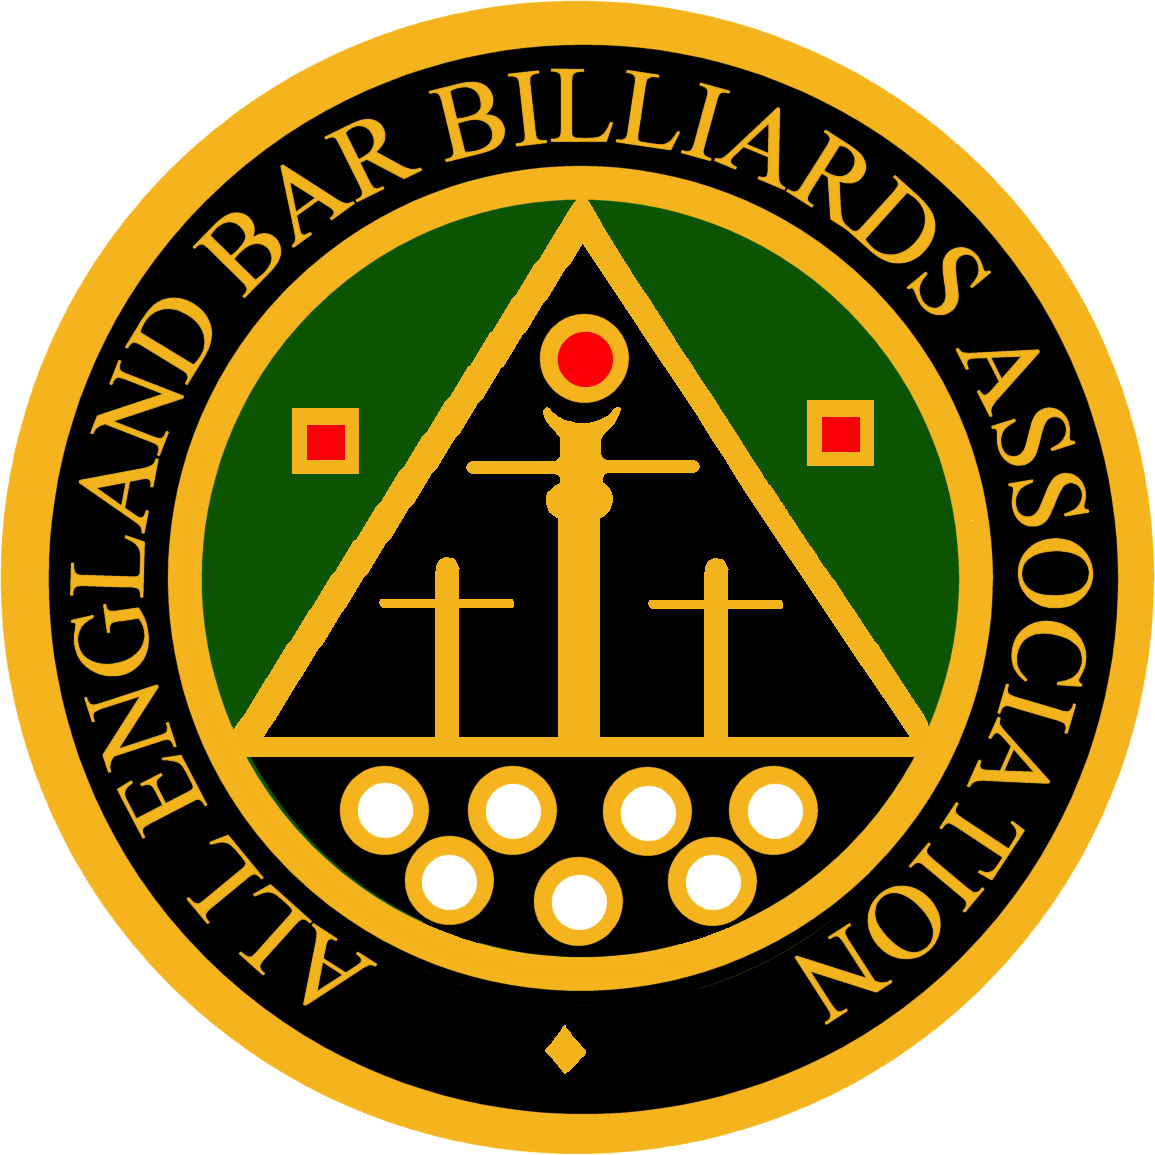 All England Bar Billiards